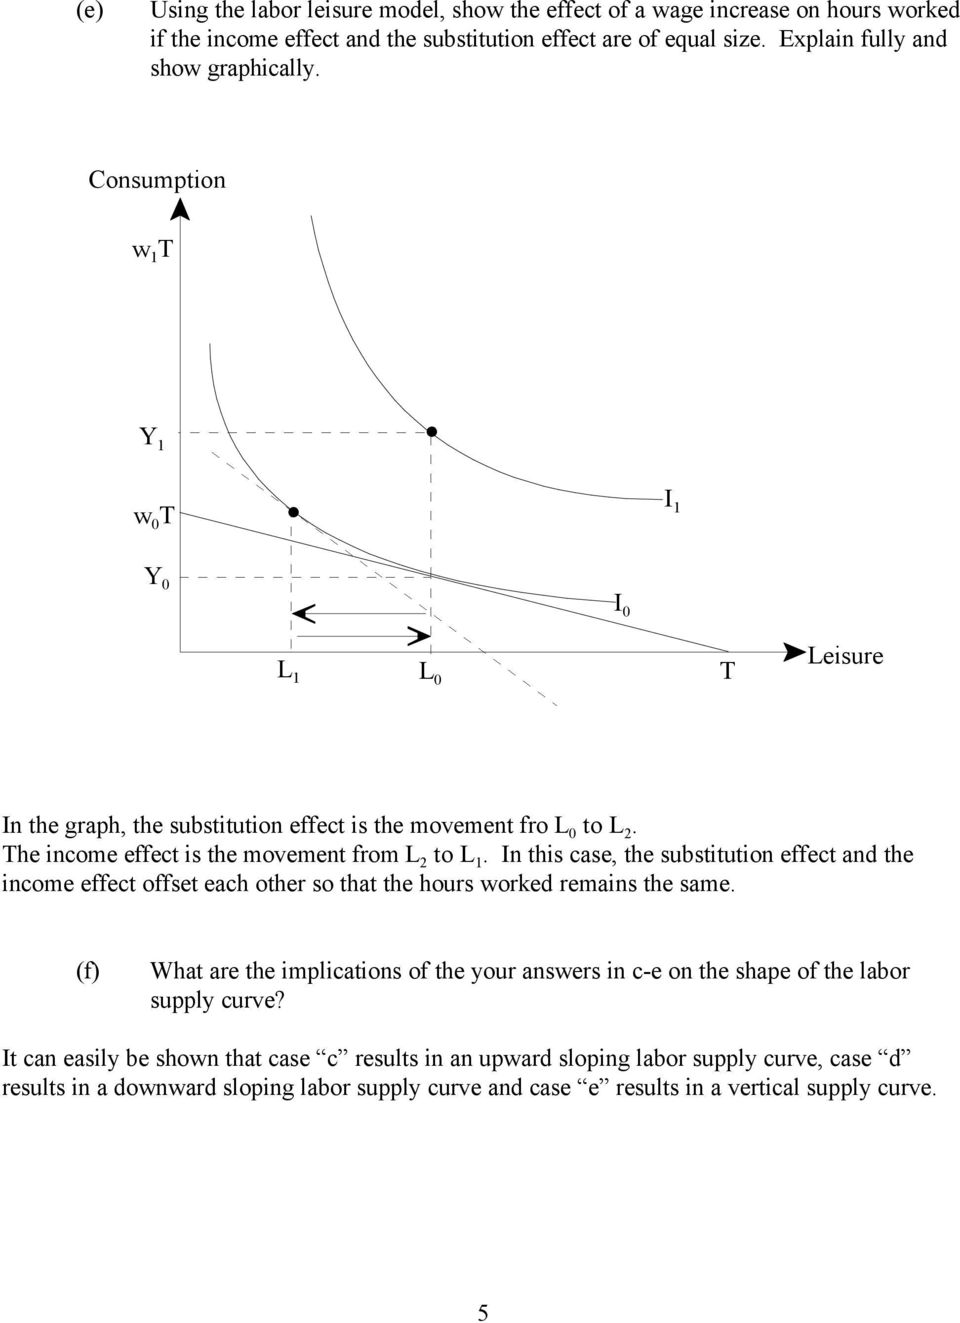 the substitution effect and the income effect offset each other so that the hours worked remains the same (f) What are the implications of the your answers in c-e on the shape of the labor